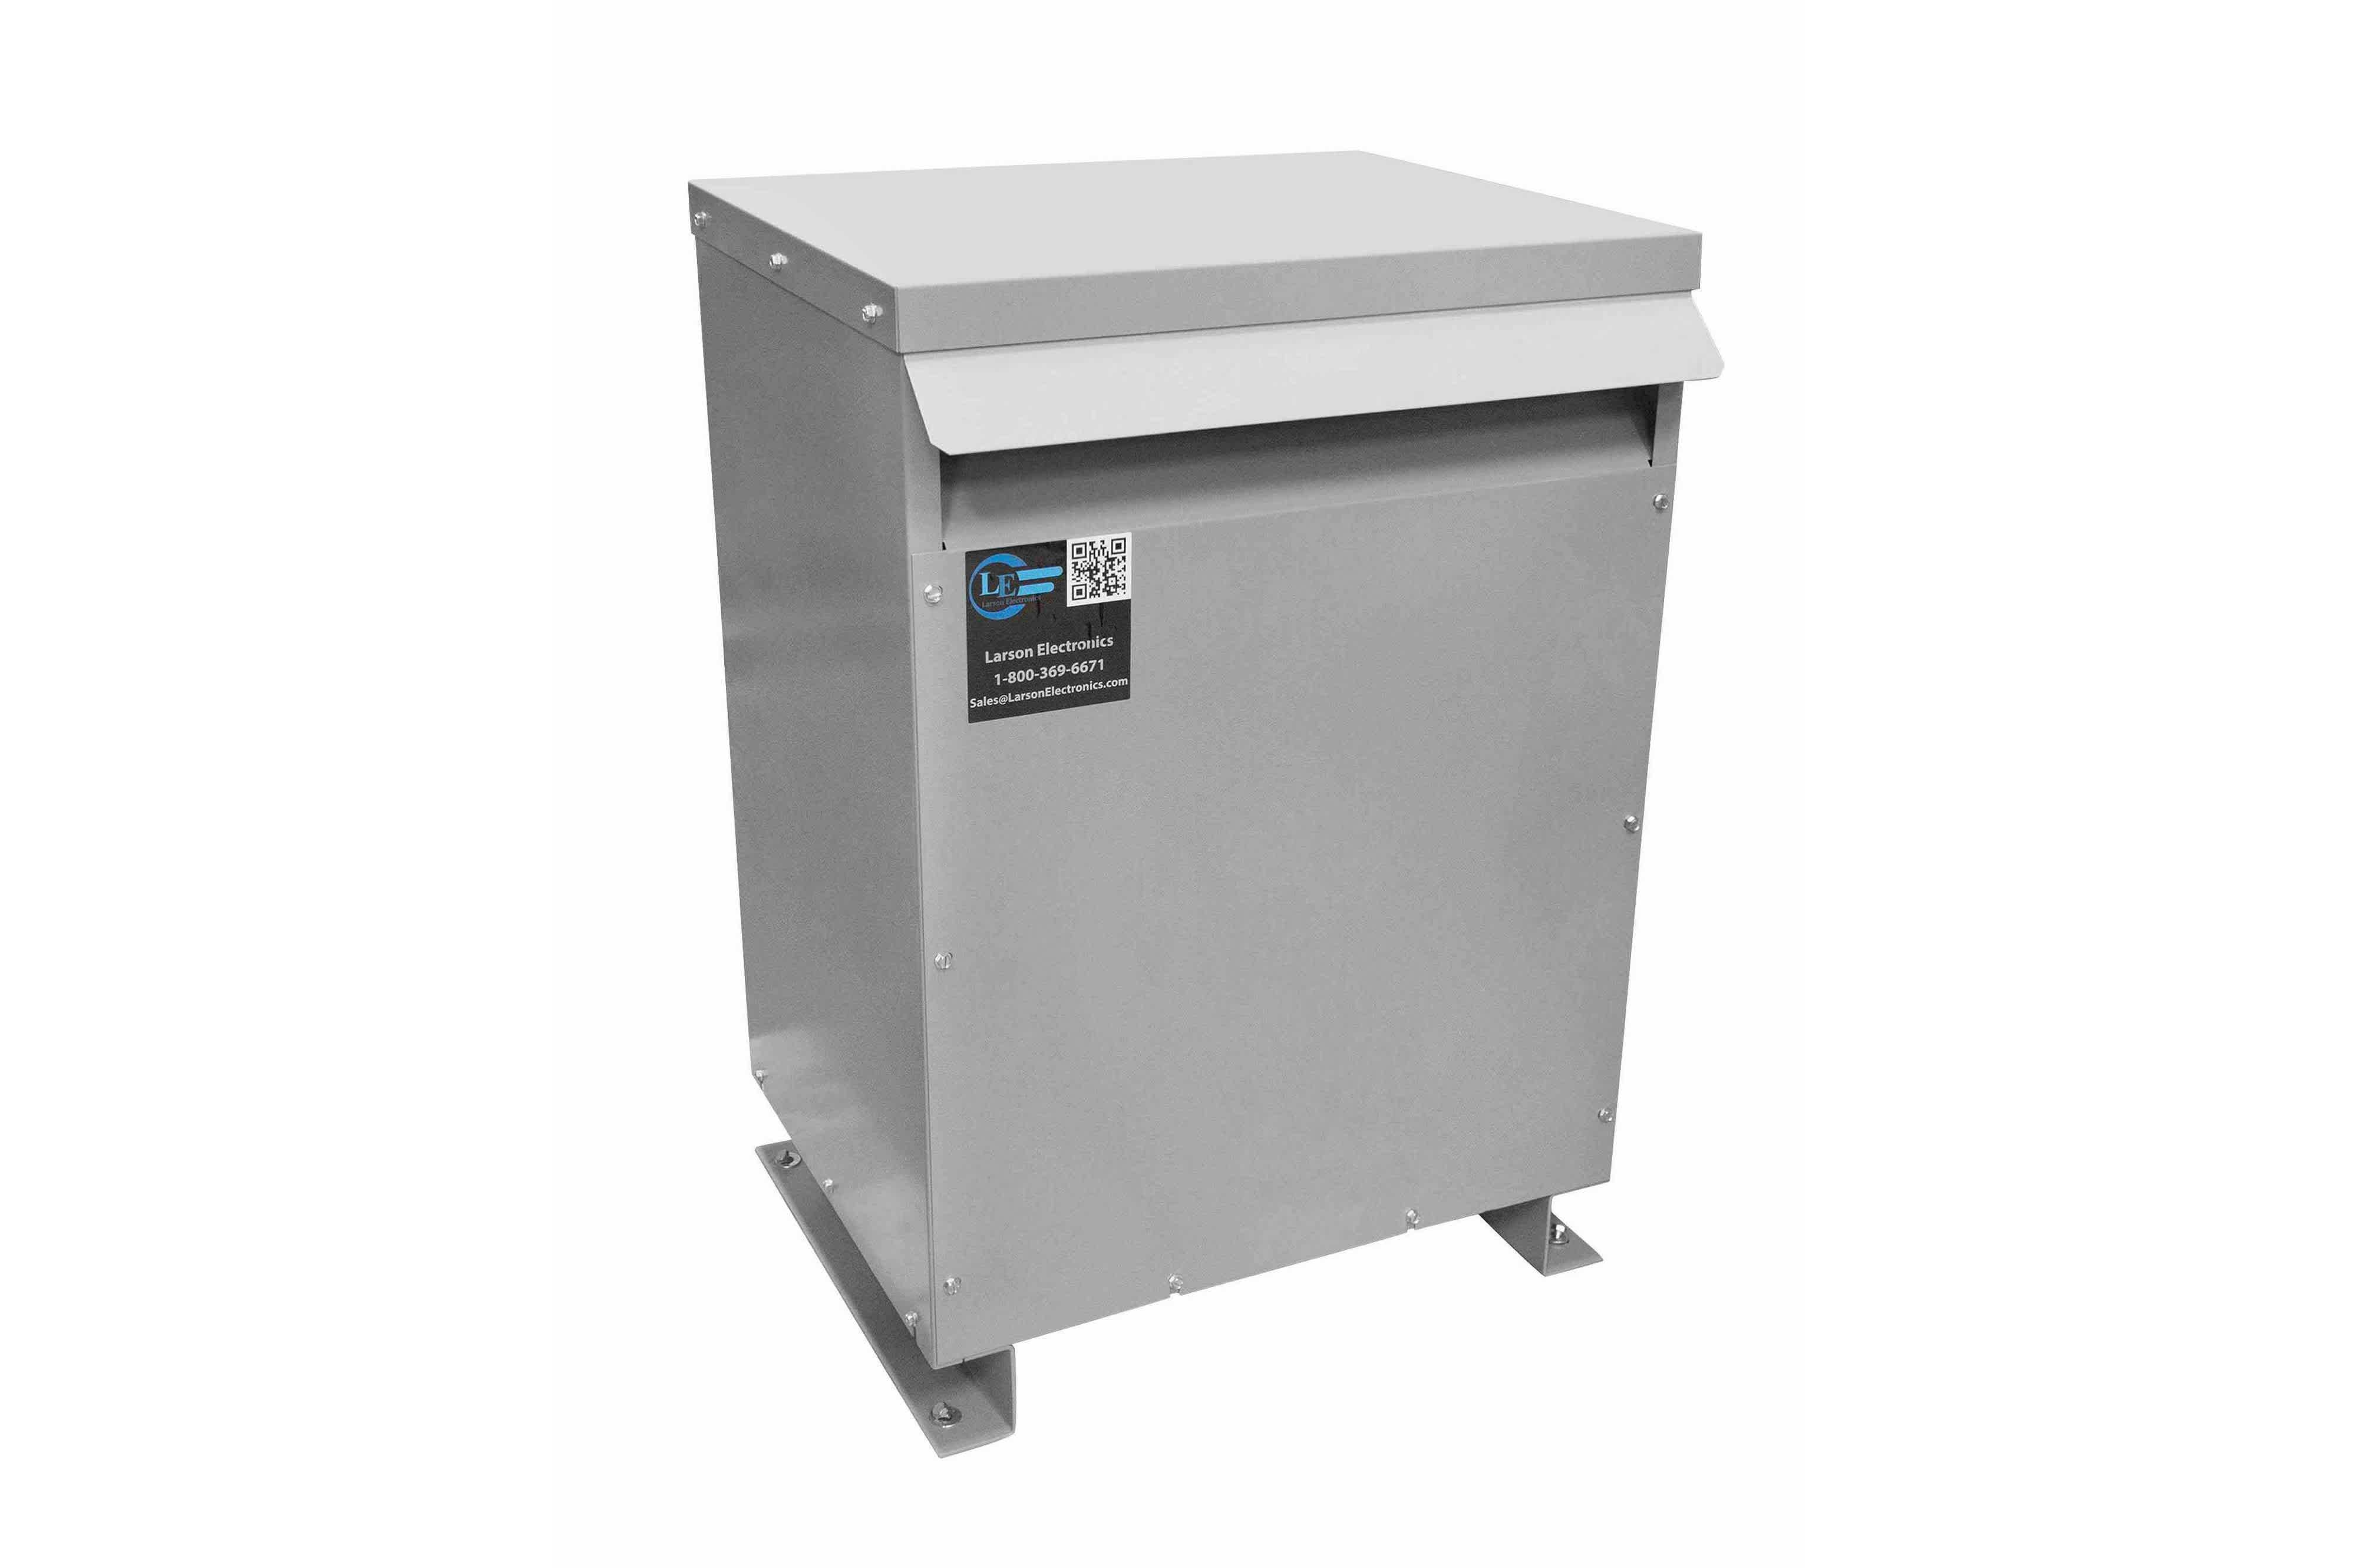 36 kVA 3PH Isolation Transformer, 575V Delta Primary, 240 Delta Secondary, N3R, Ventilated, 60 Hz